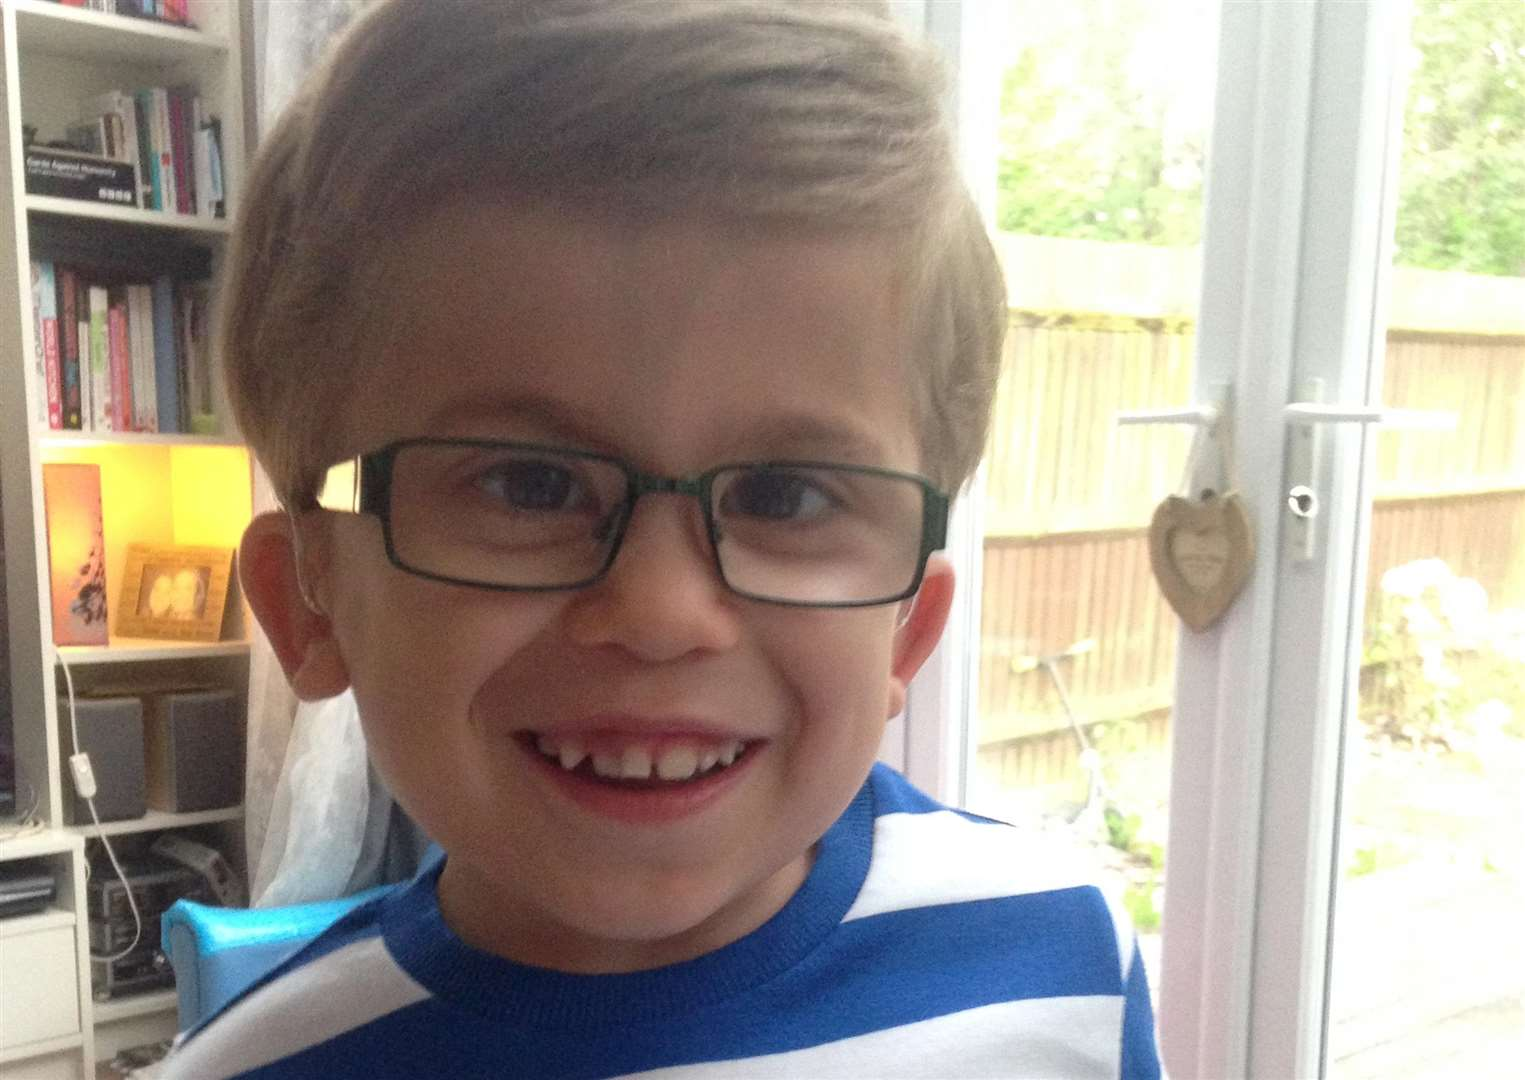 Ethan was diagnosed with MPS shortly before his third birthday